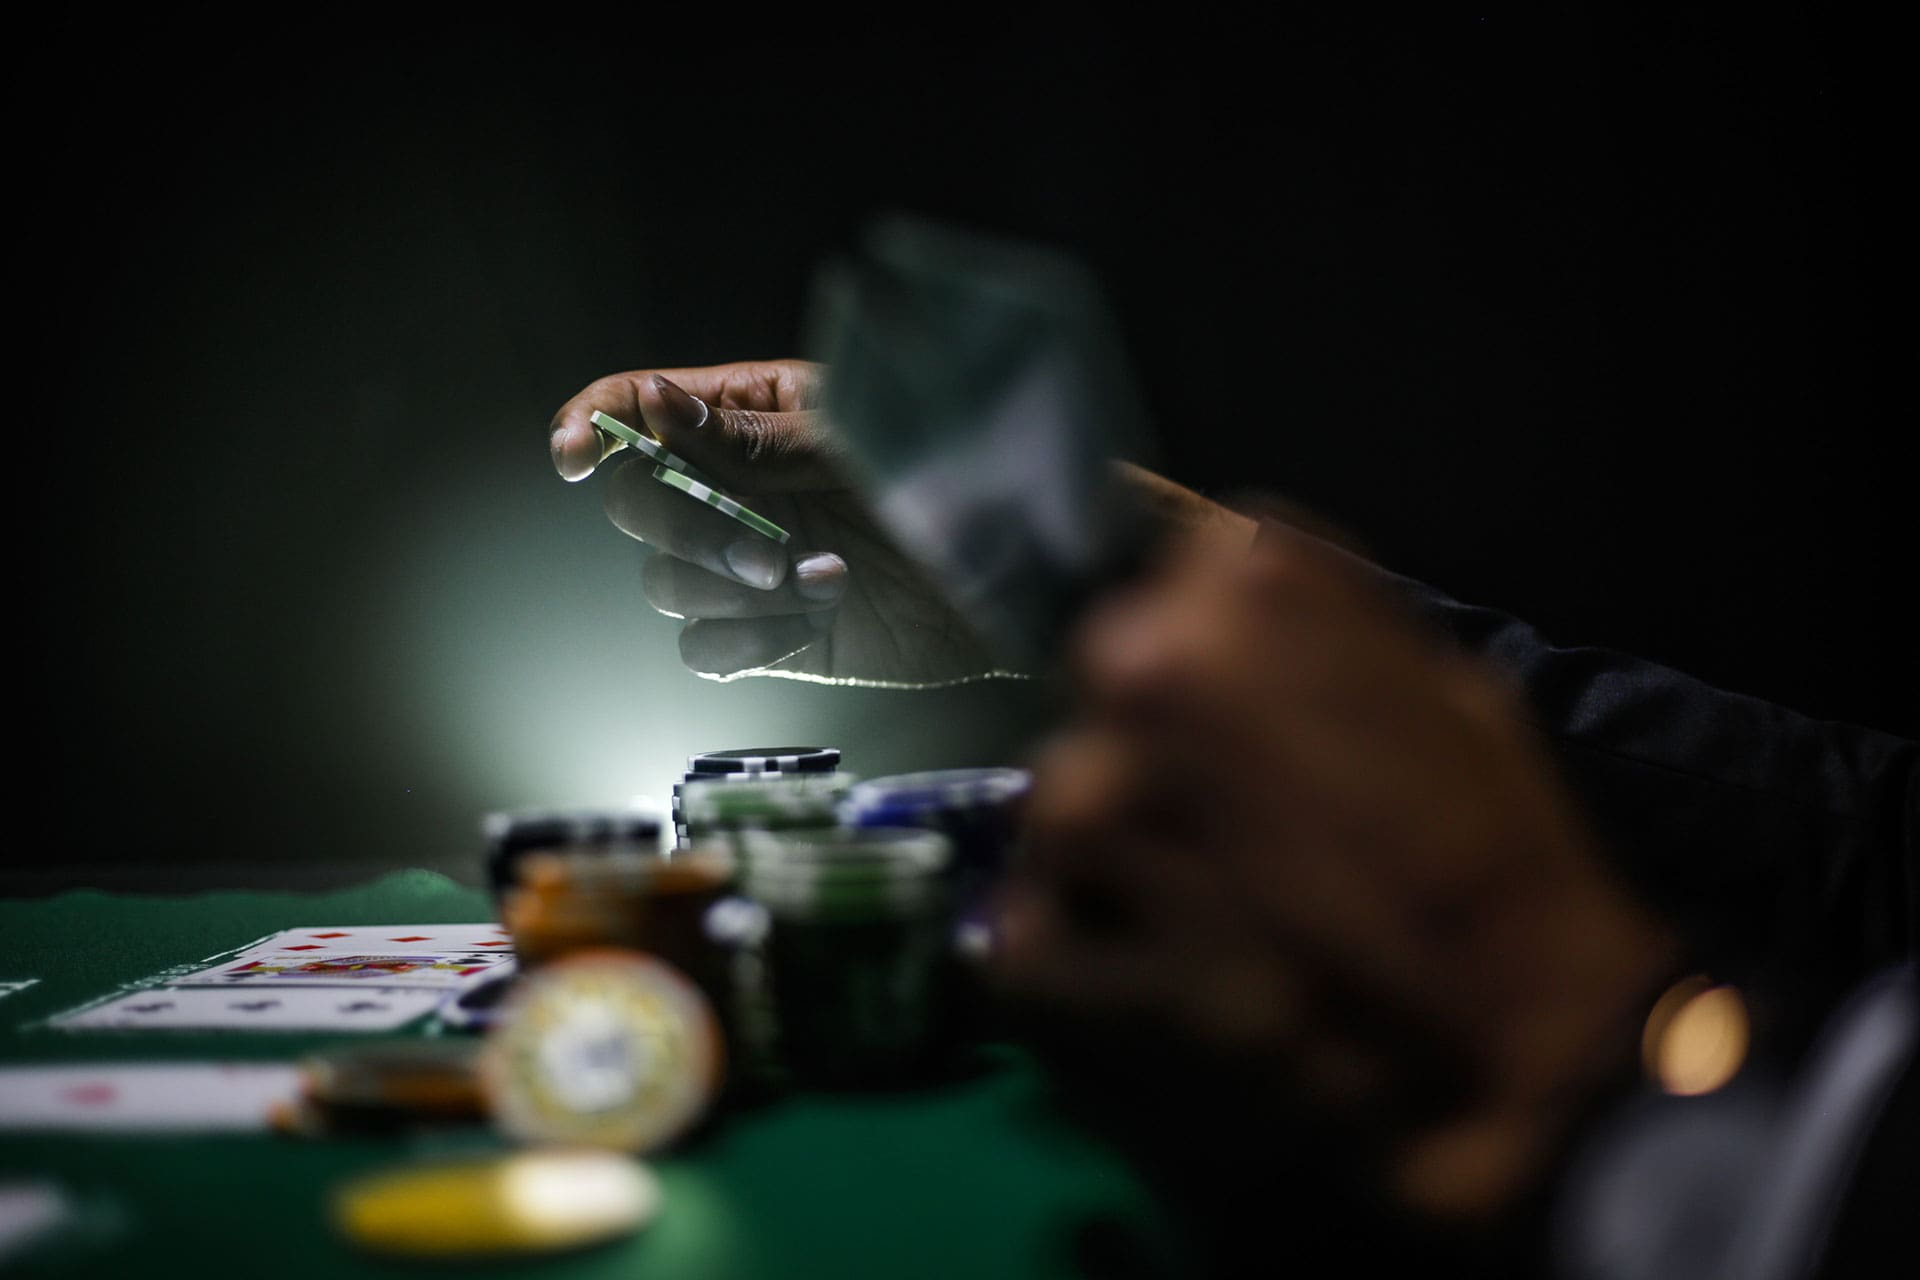 man playing poker holding chips